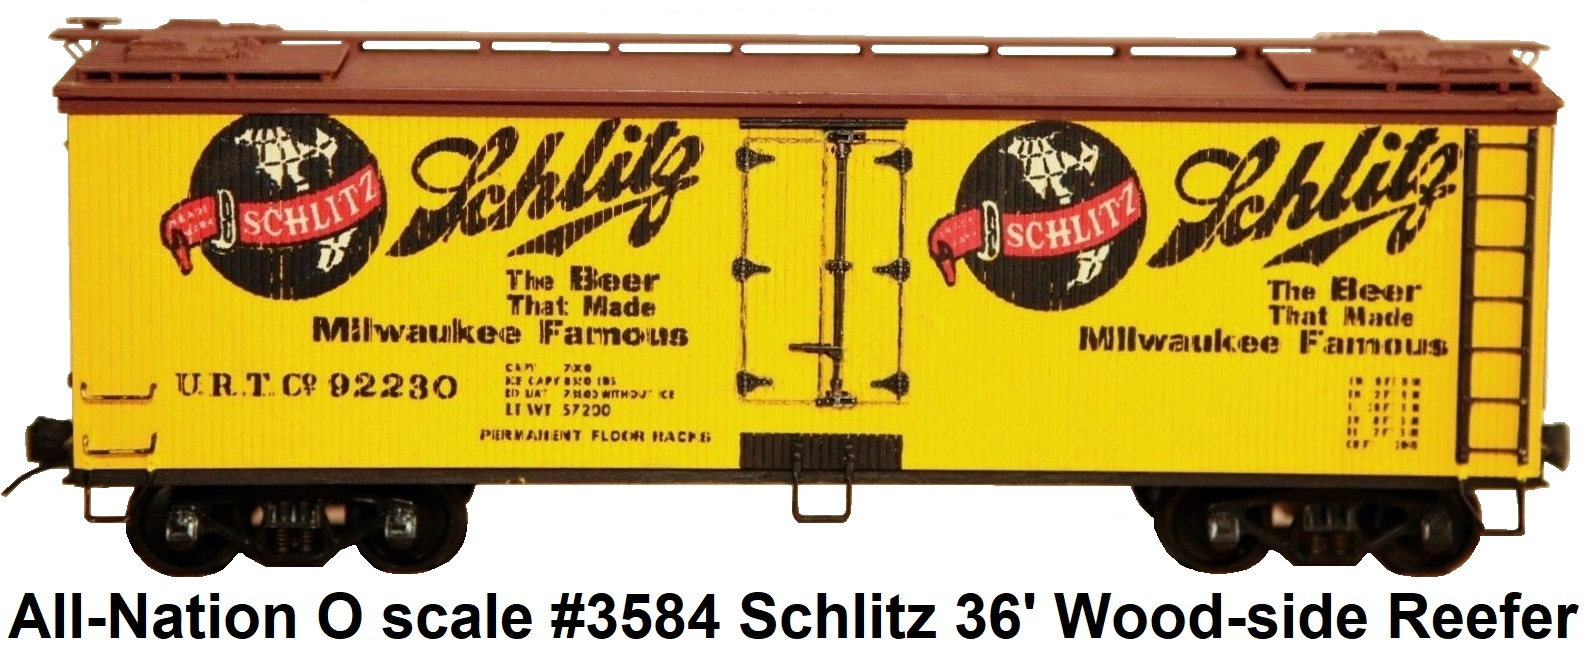 All-Nation 'O' scale 2-rail kit-built #3584 Schlitz 36' Wood Reefer #92230